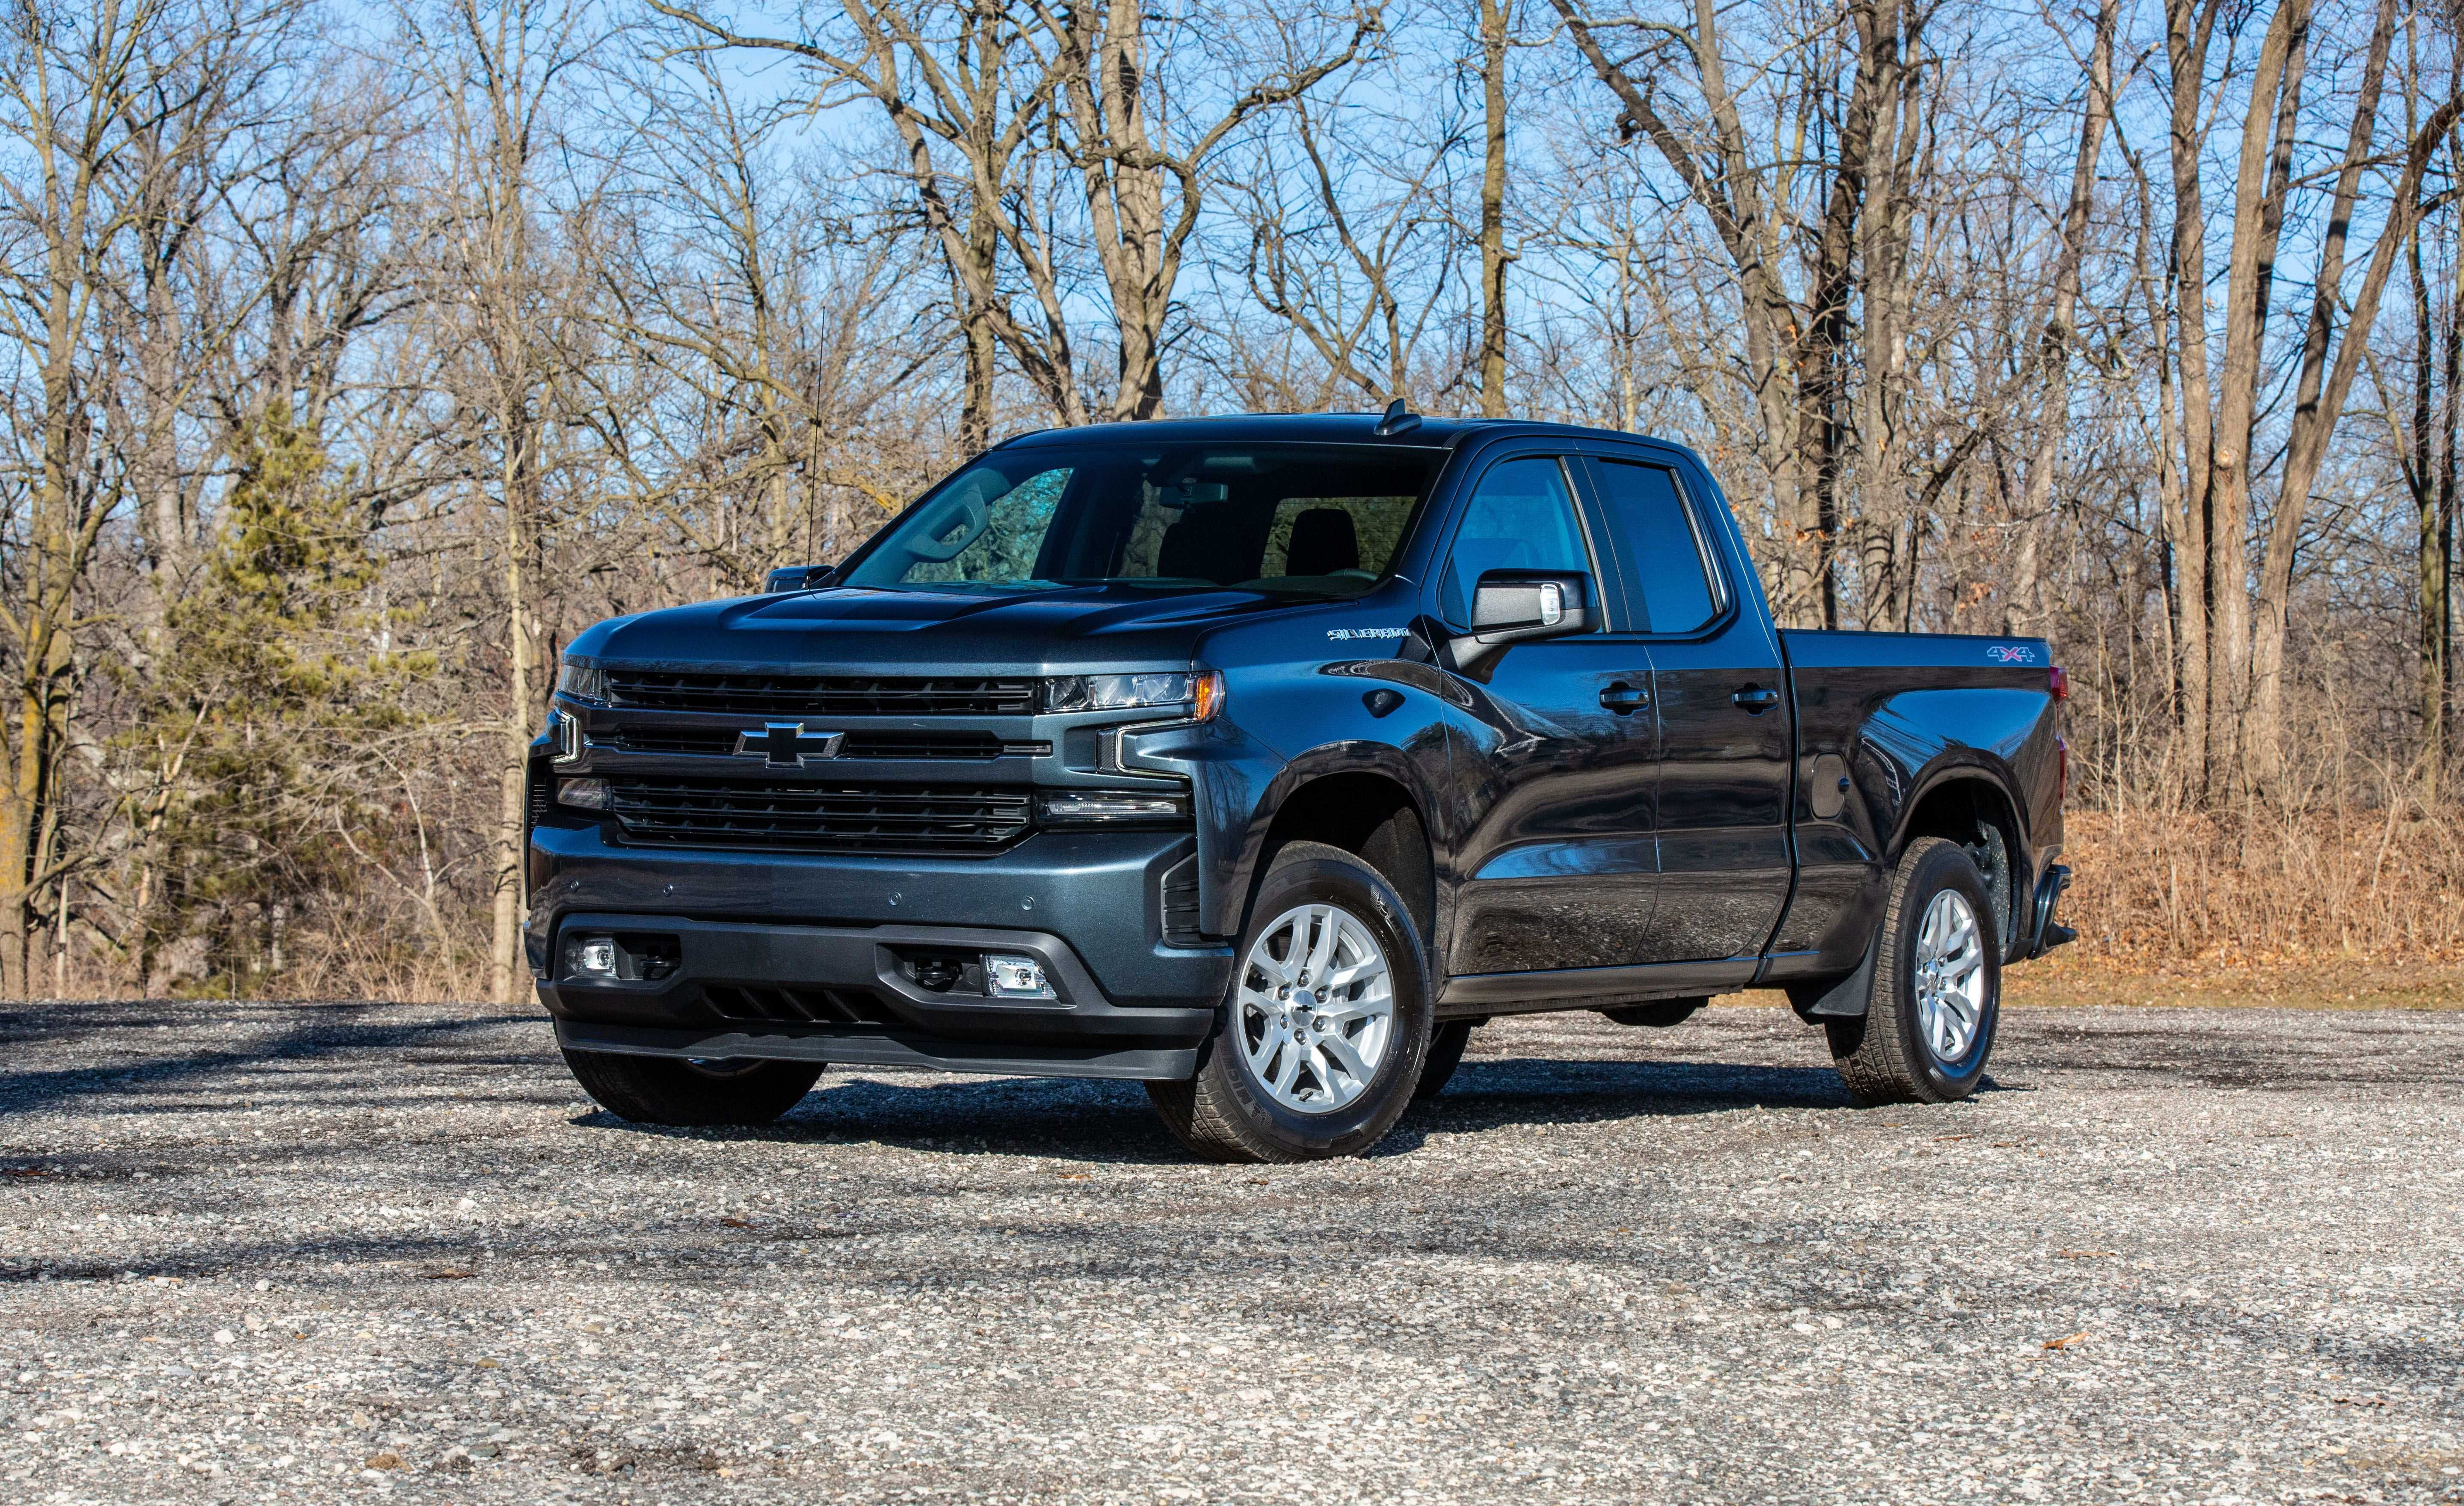 78 A 2019 Chevrolet Silverado 1500 Review Pricing